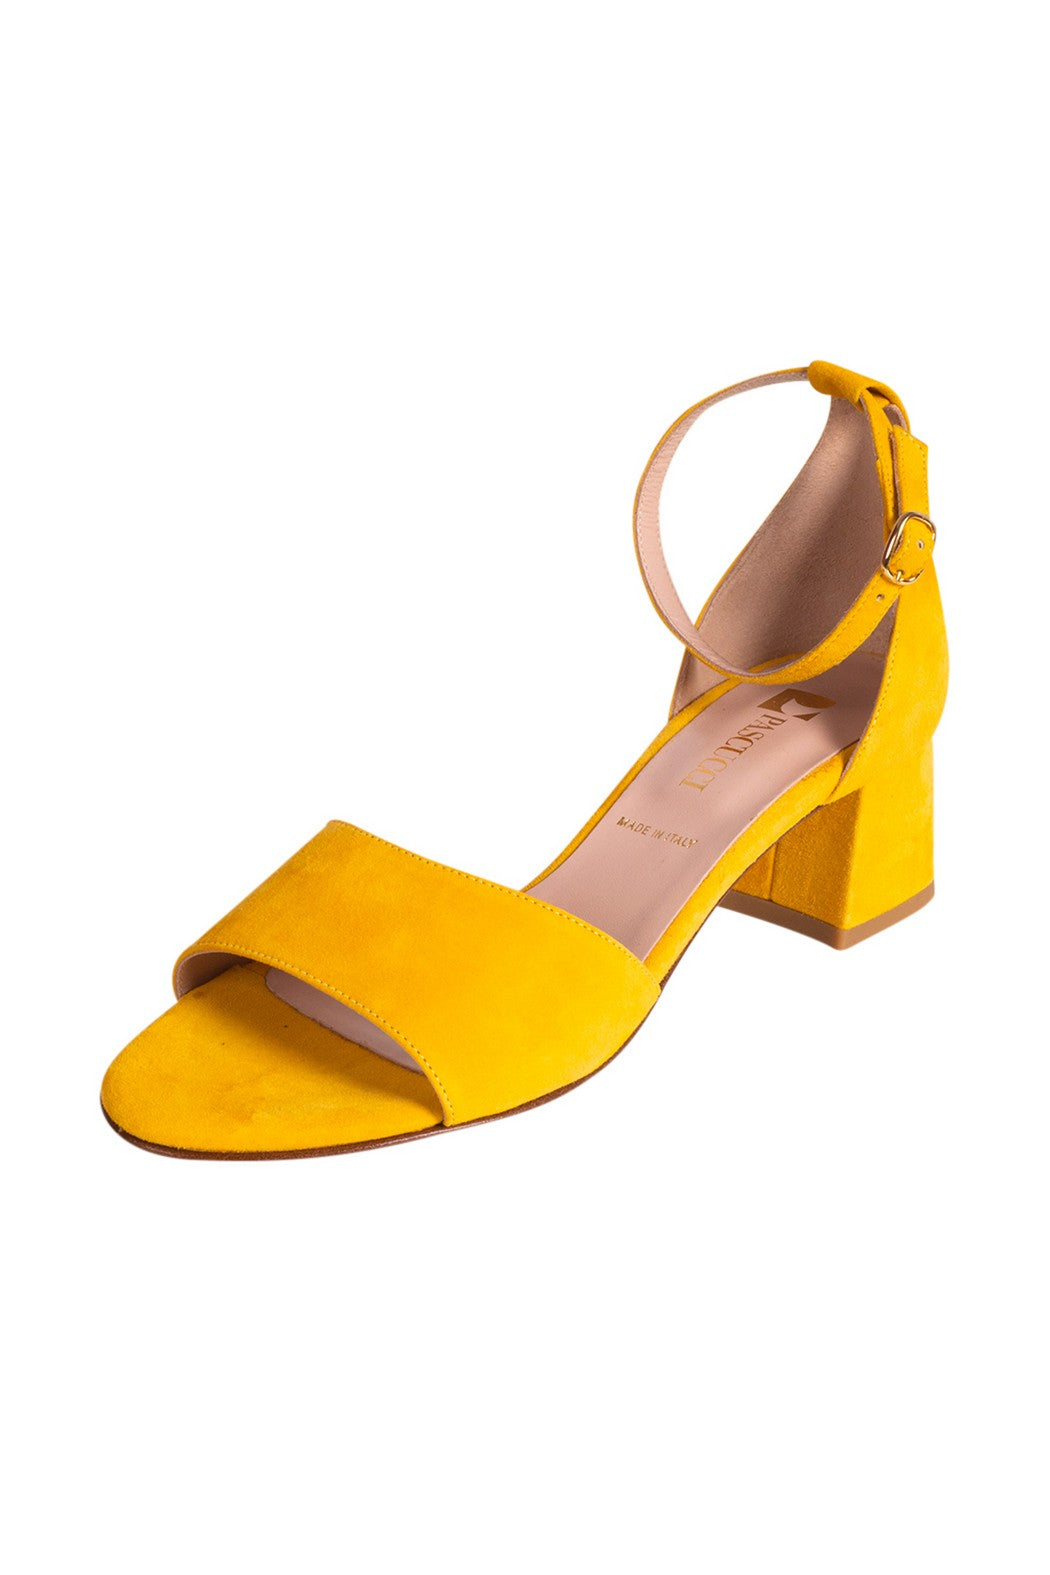 CARINA Pascucci Yellow Suede Heeled Sandal